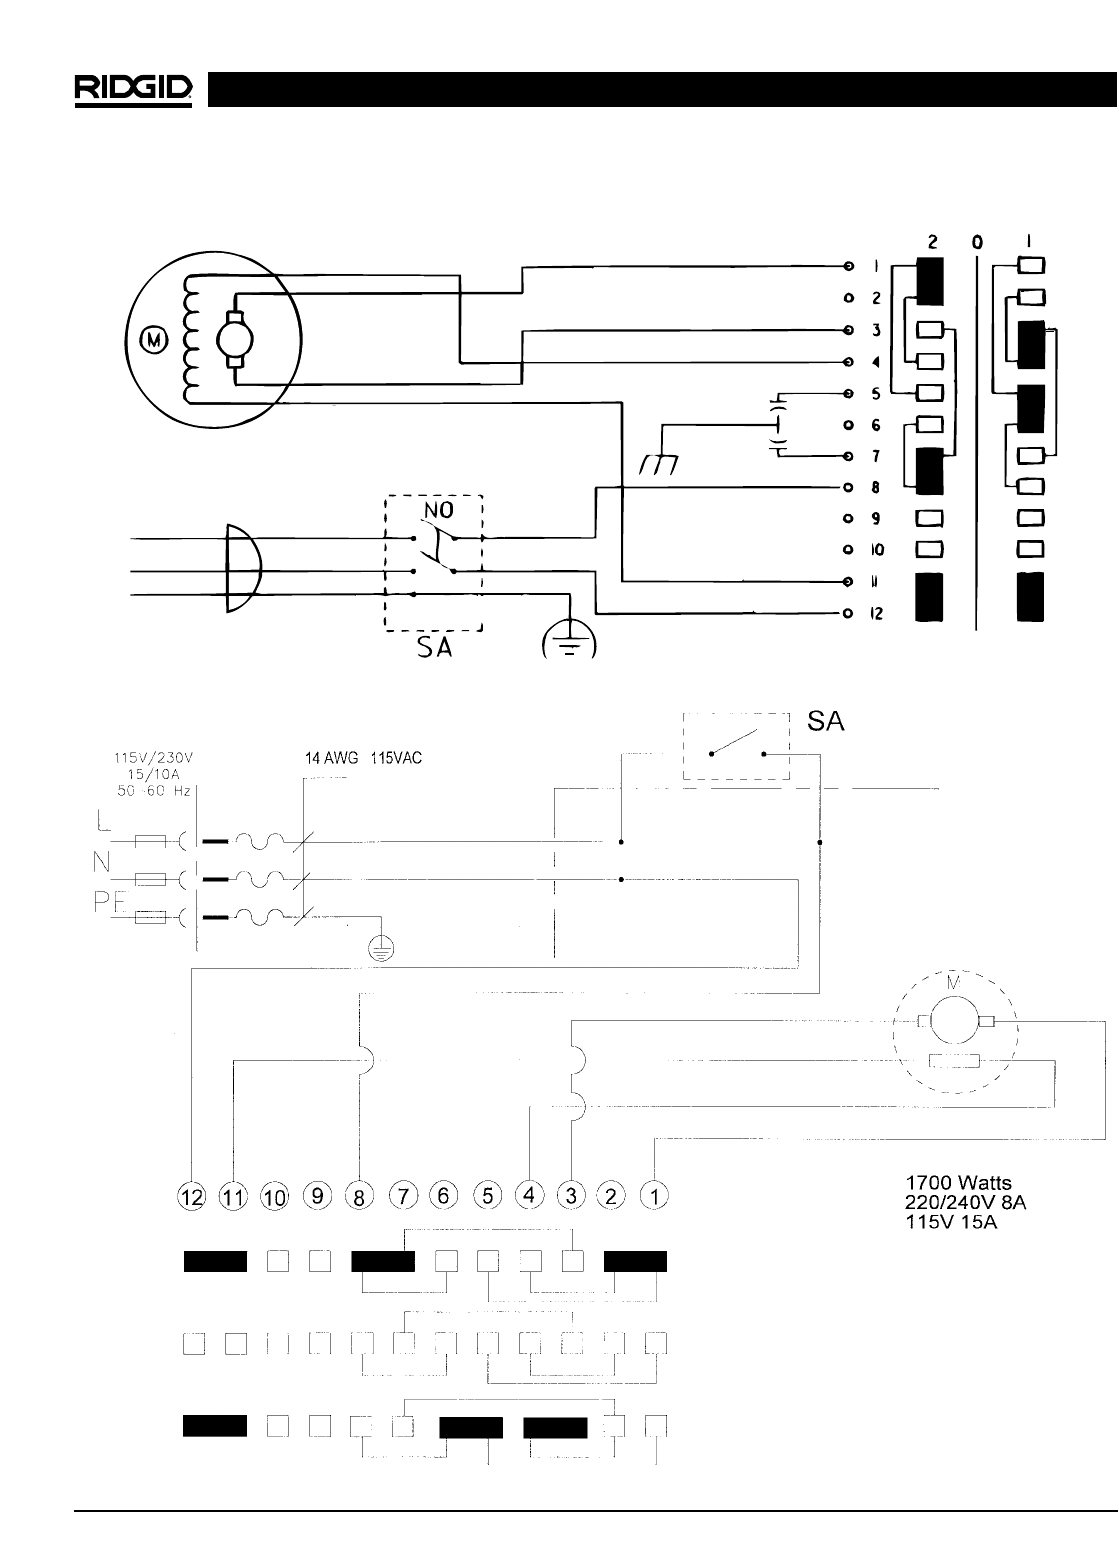 Ridgid 700 Wiring Diagram. Wiring. Wiring Diagram Images